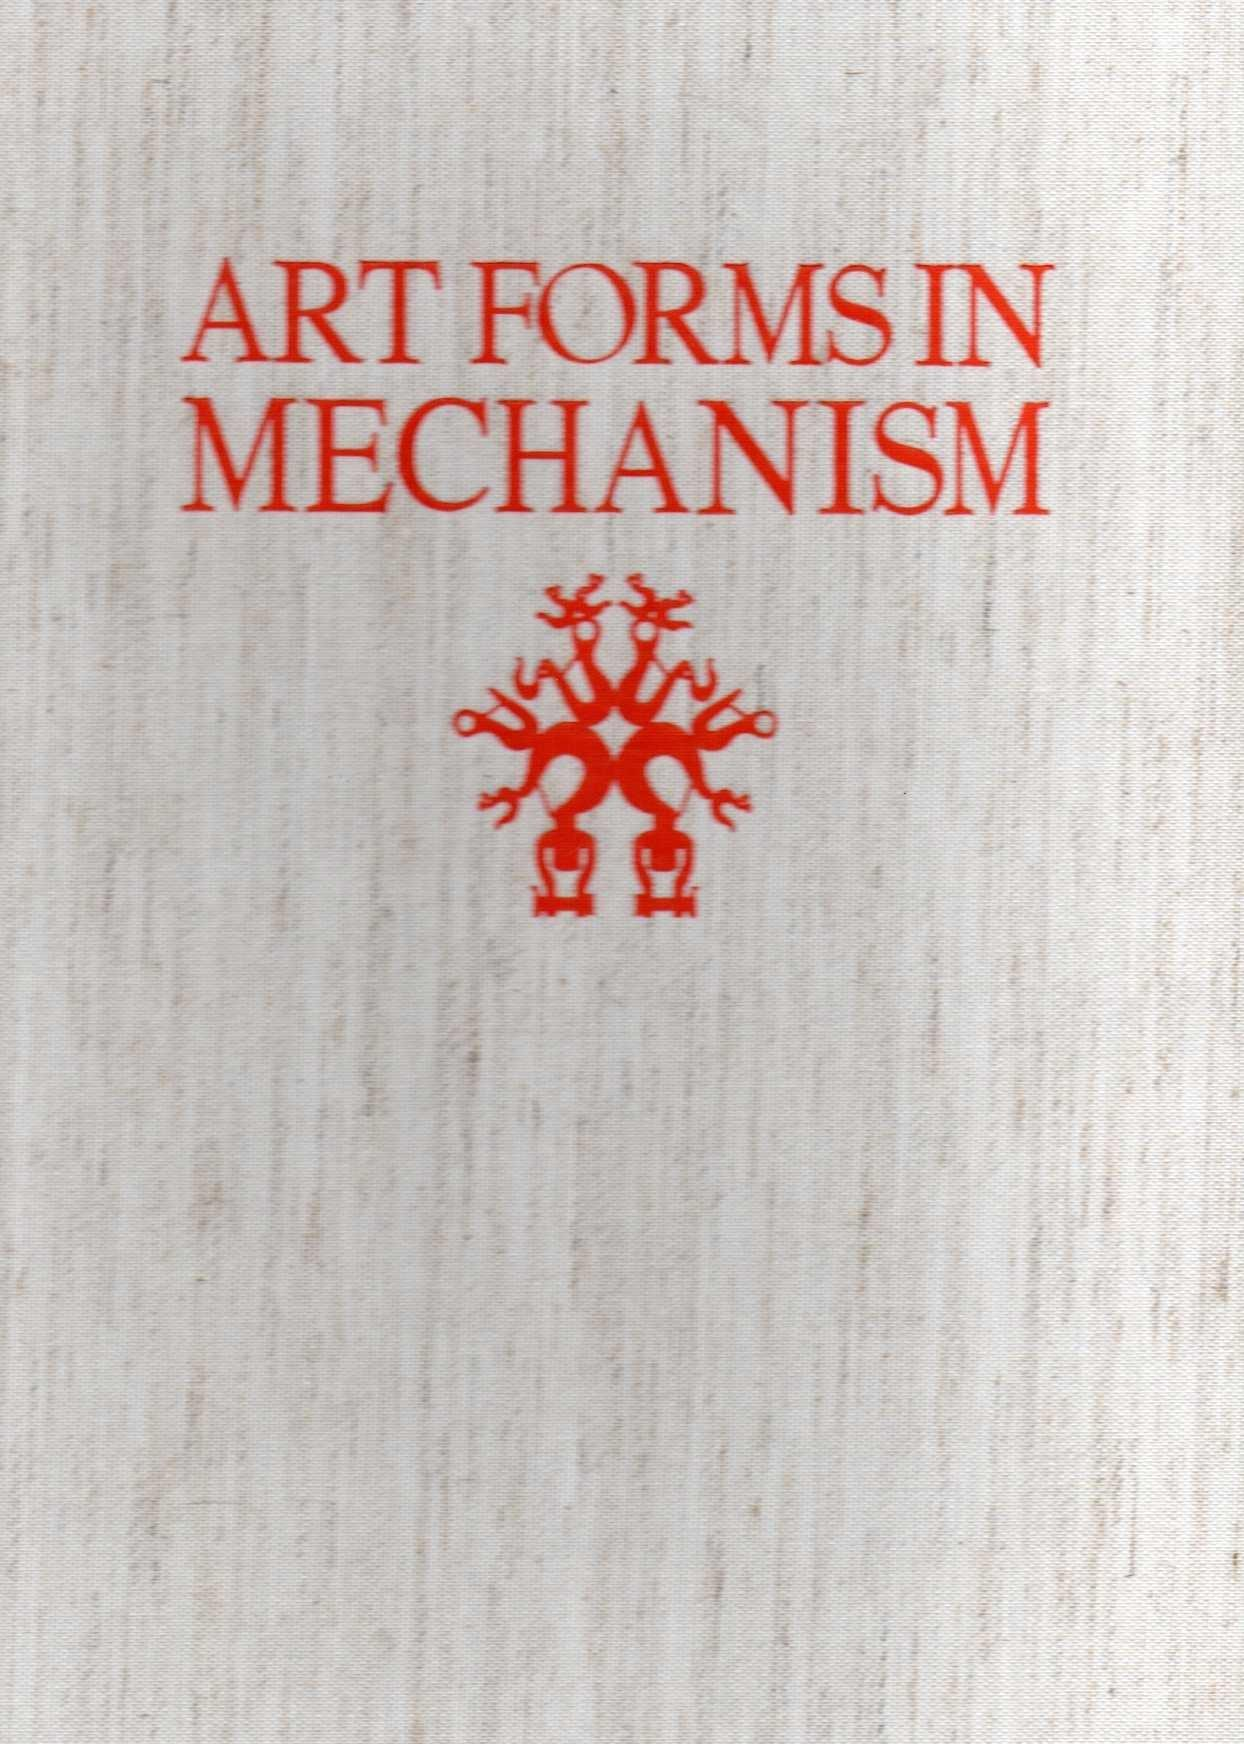 ART FORMS IN MECHANISM